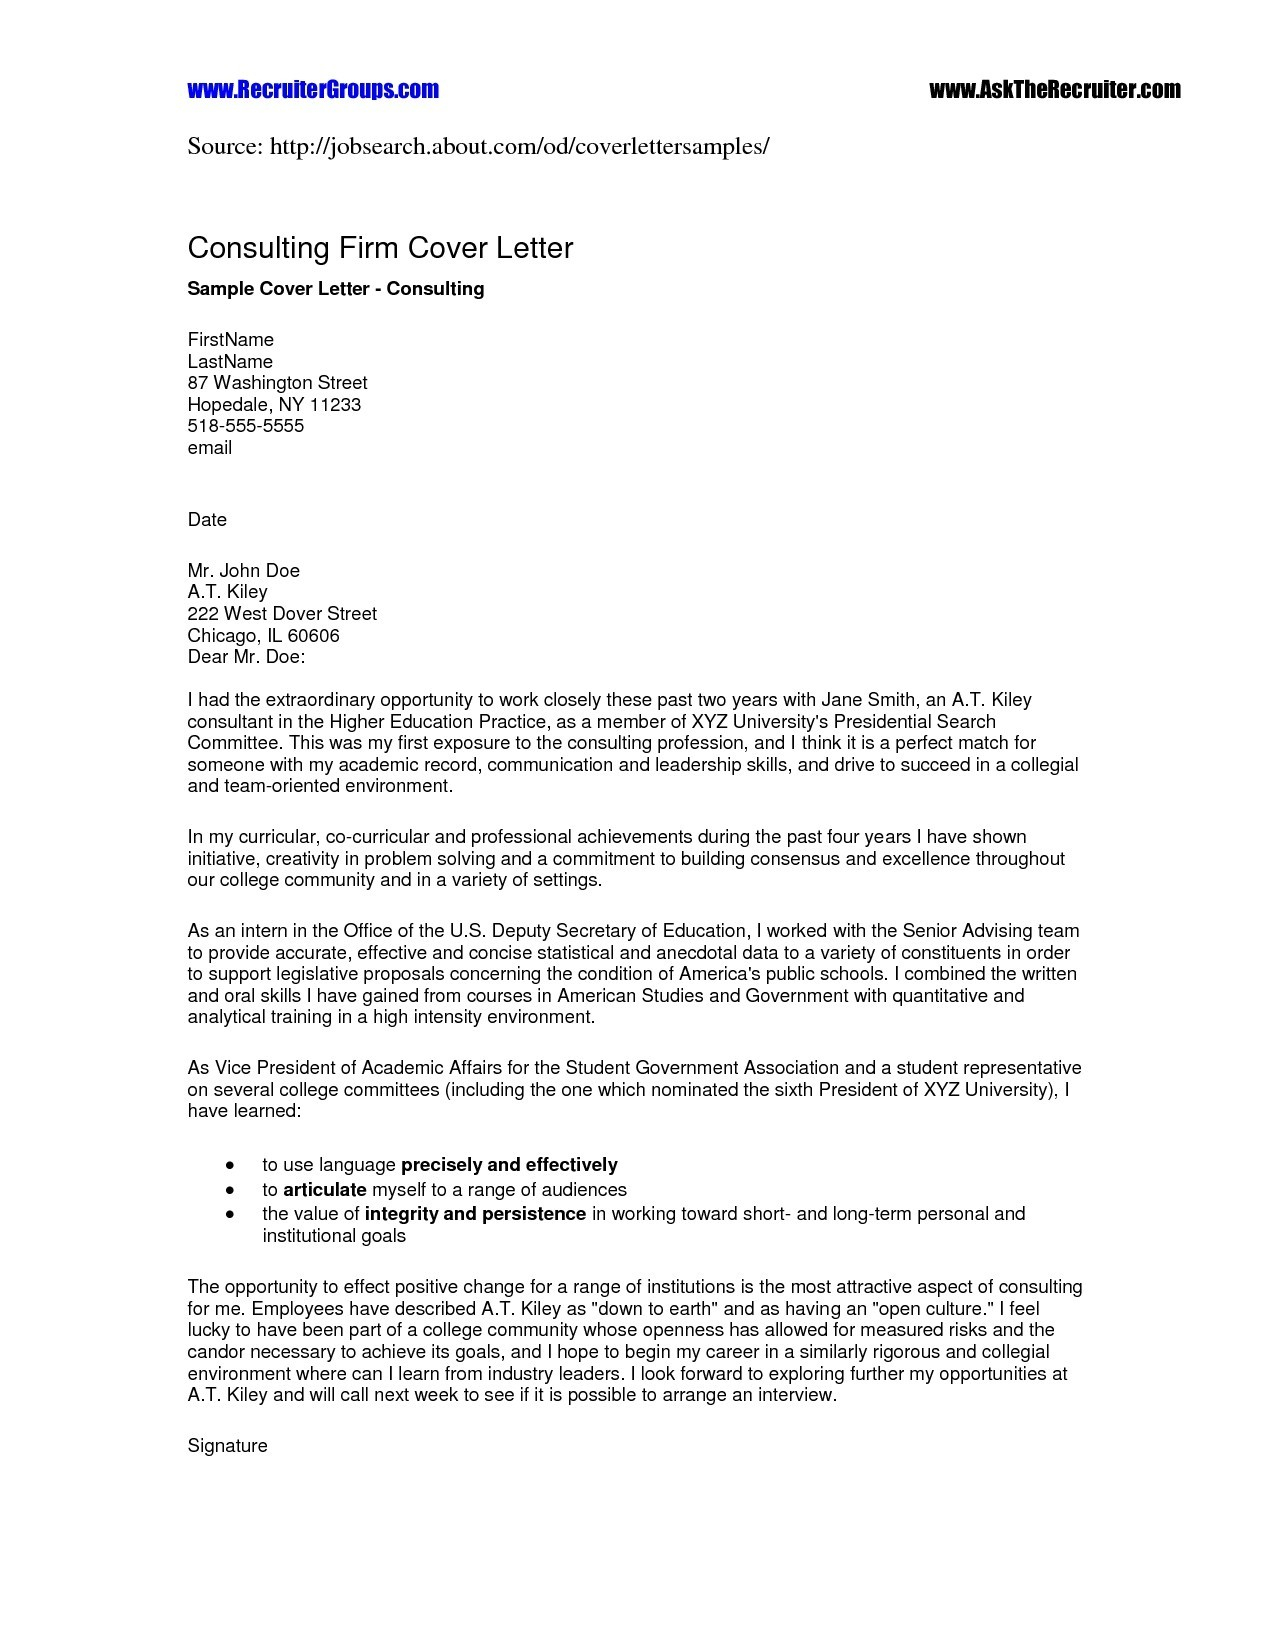 Loan Letter Template - Job Letter for Loan New Job Letter for Loan Best Letter Template for